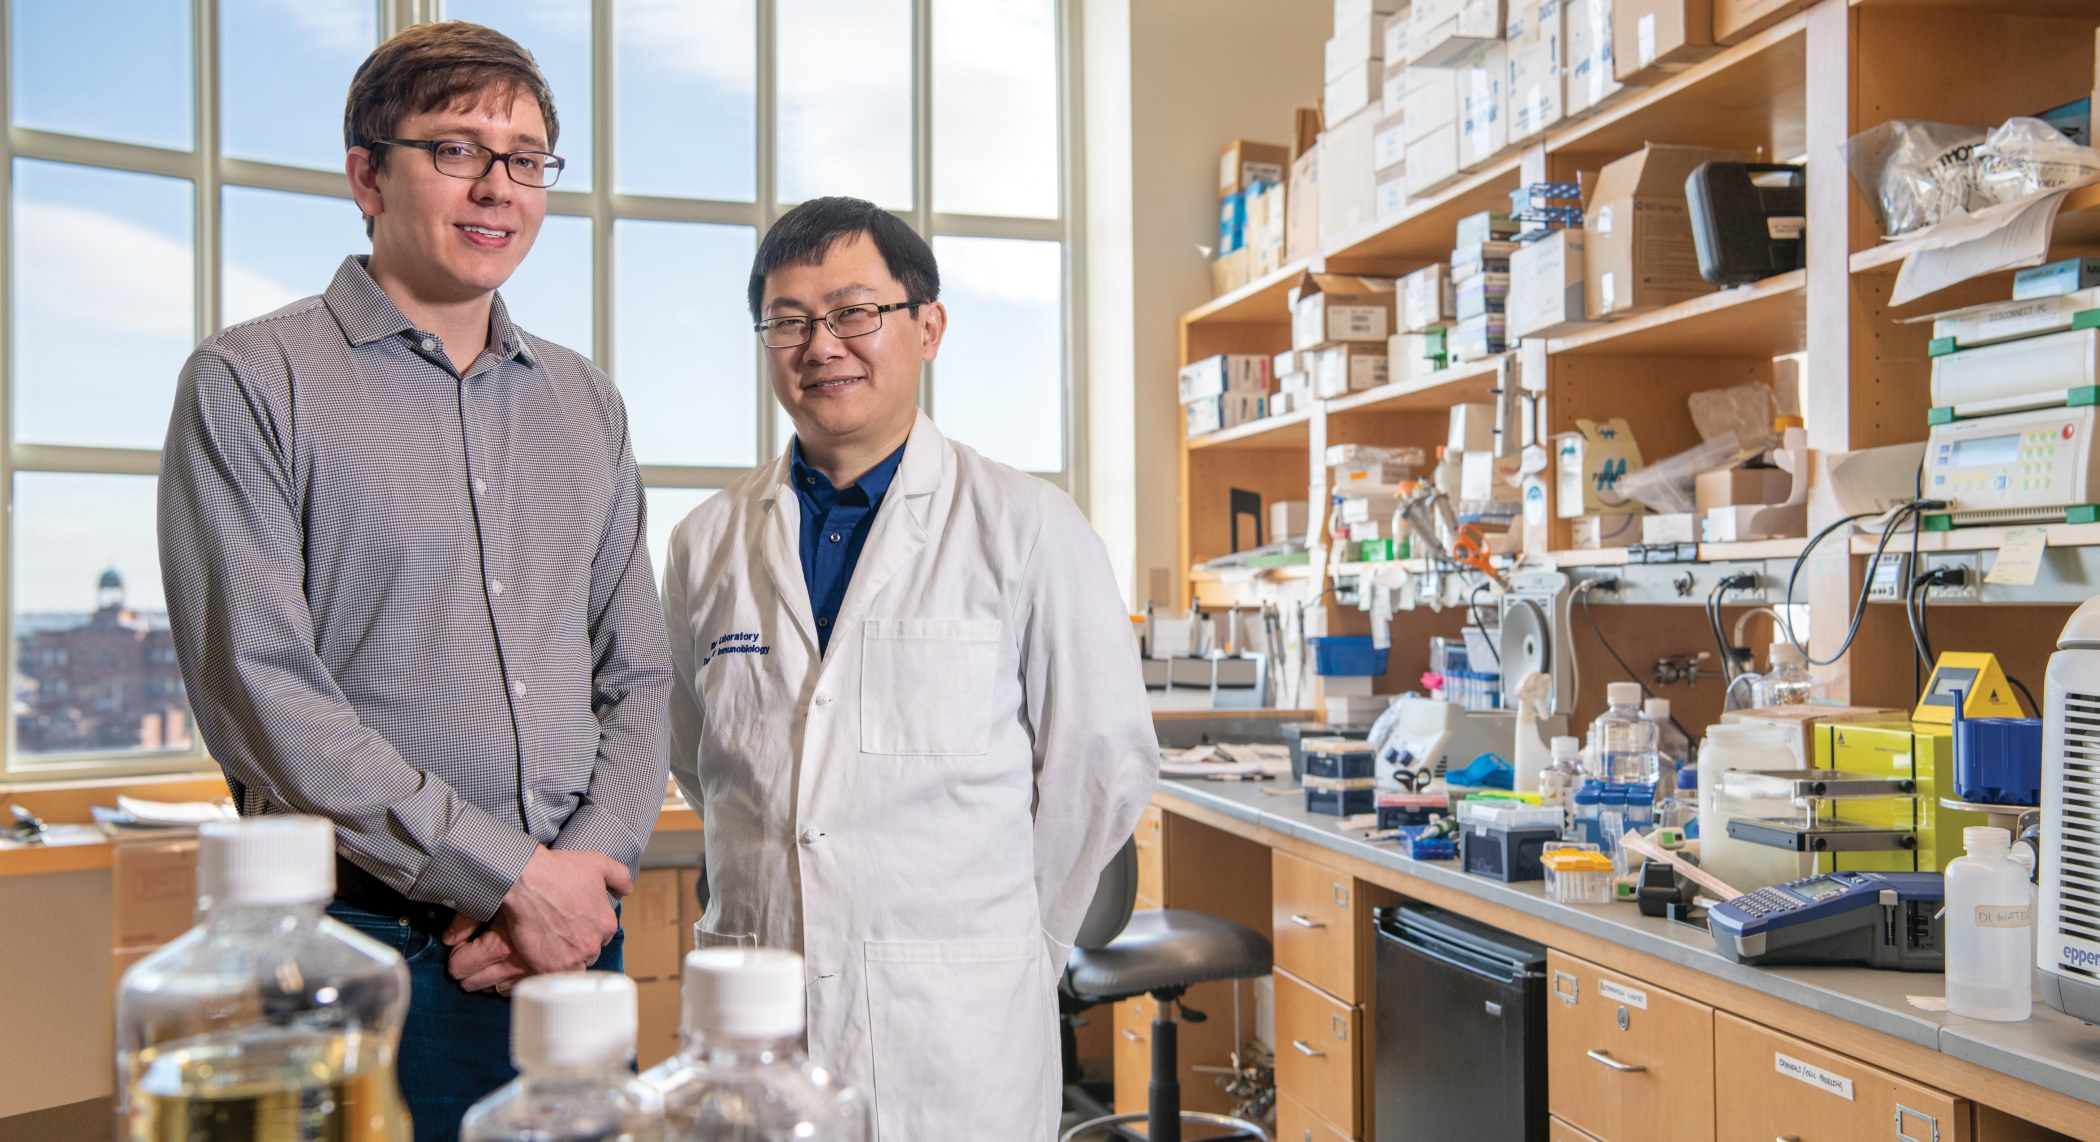 Aaron Ring, MD, PhD and Ting Zhou, PhD